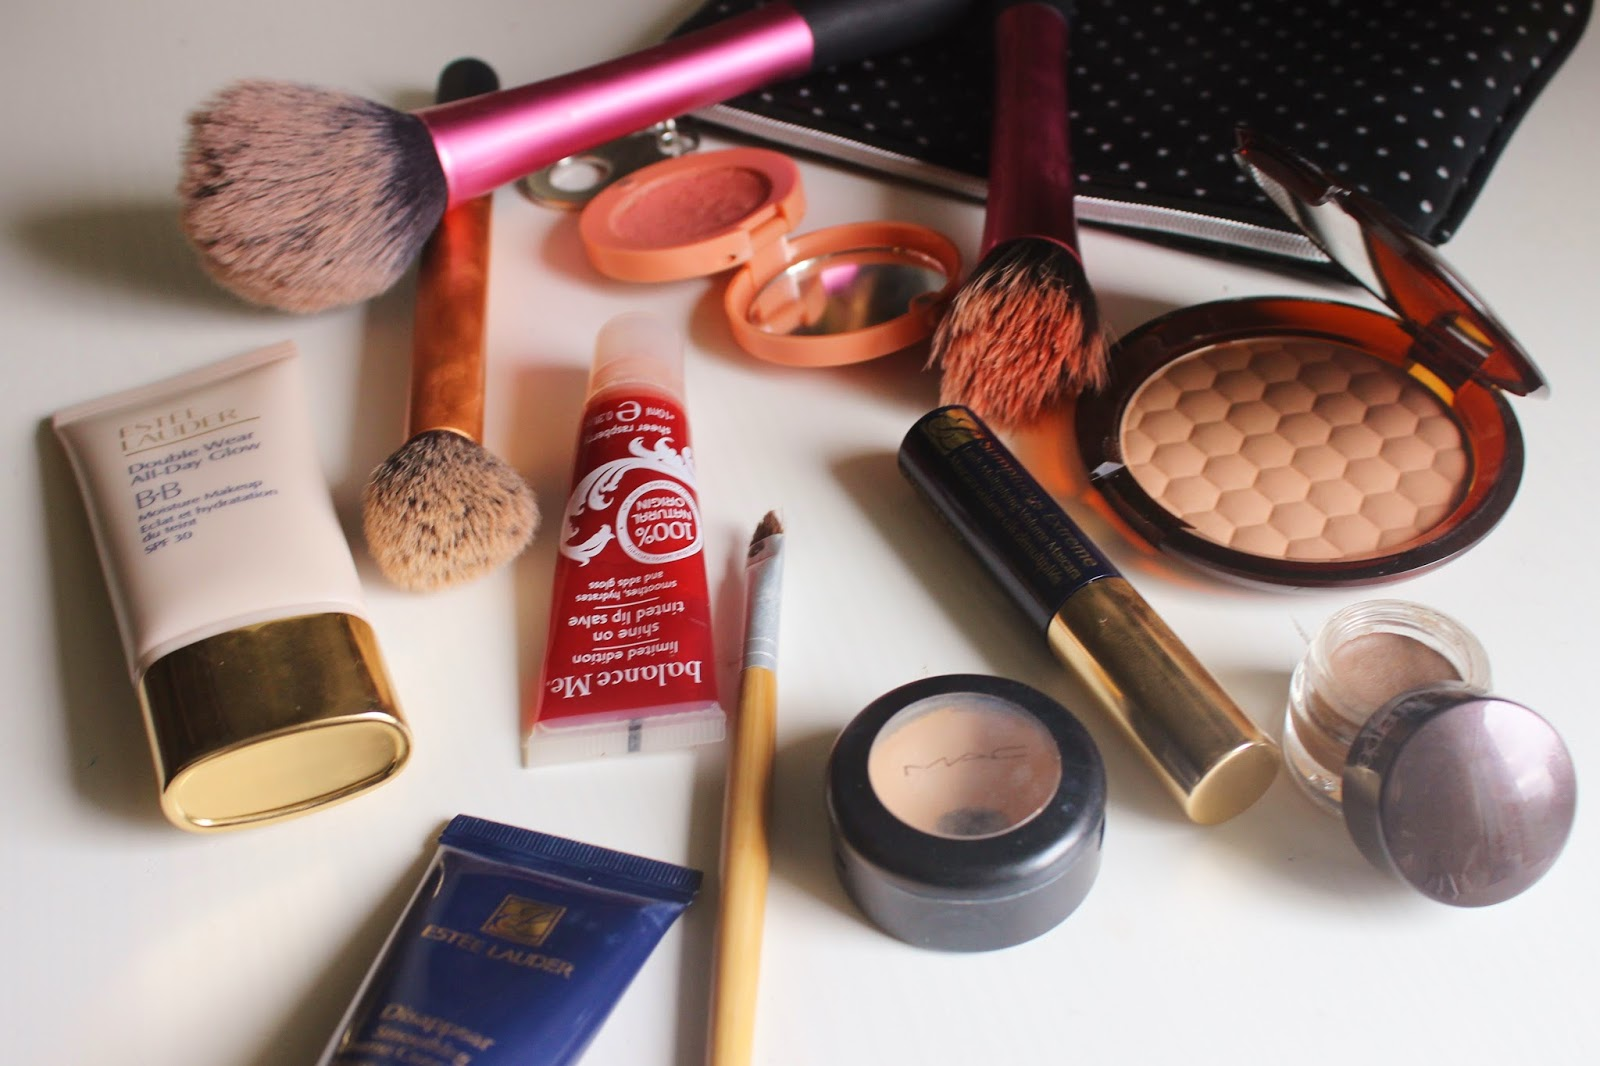 WHAT'S IN MY MAKEUP BAG FEATURING ESTEE LAUDER ALL-DAY BB GLOW